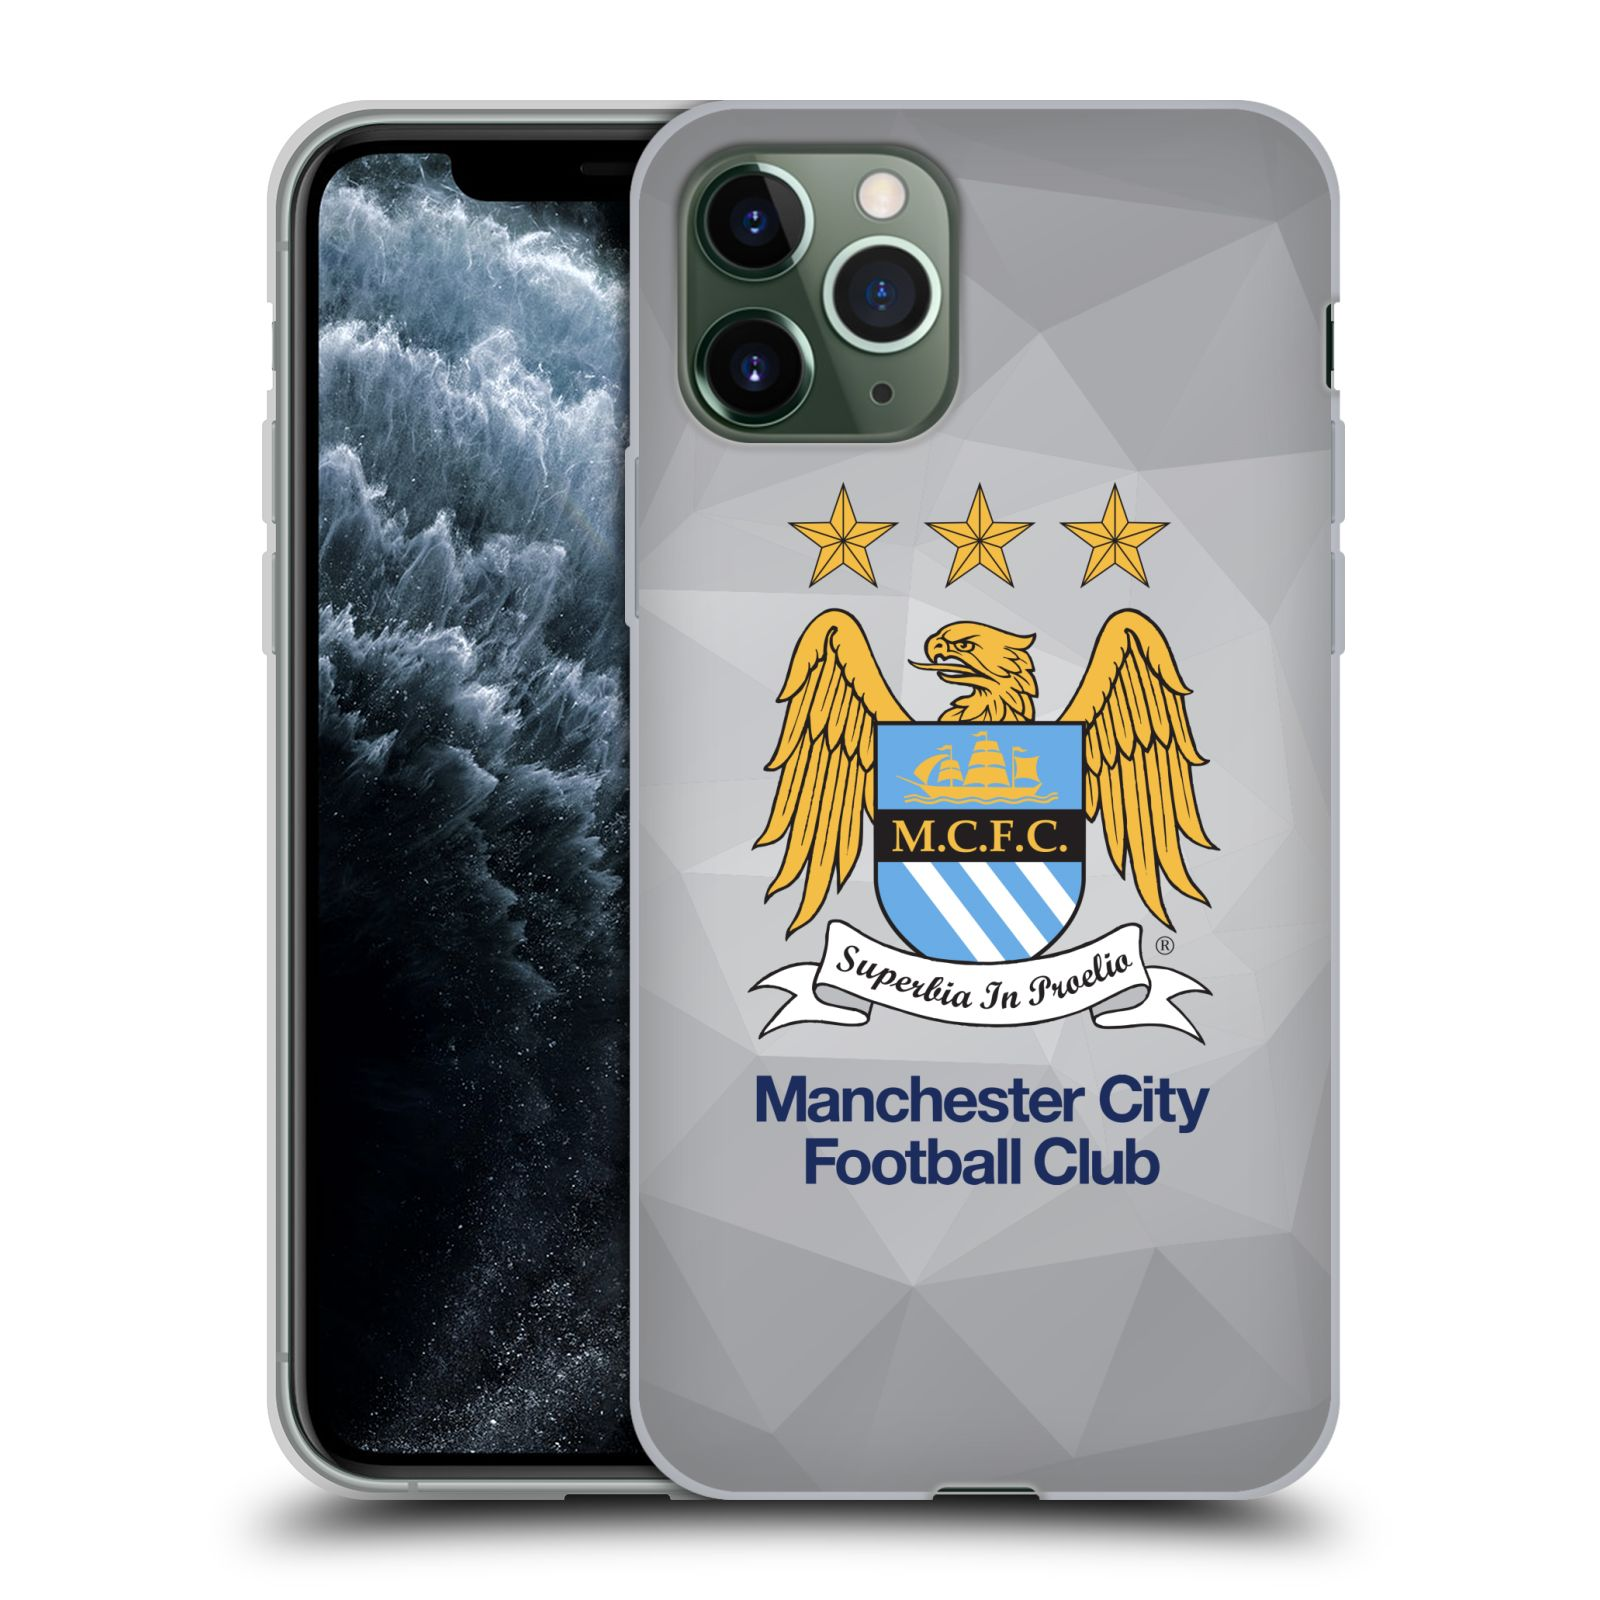 obal iphone plast | Silikonové pouzdro na mobil Apple iPhone 11 Pro - Head Case - Manchester City FC - Football Club